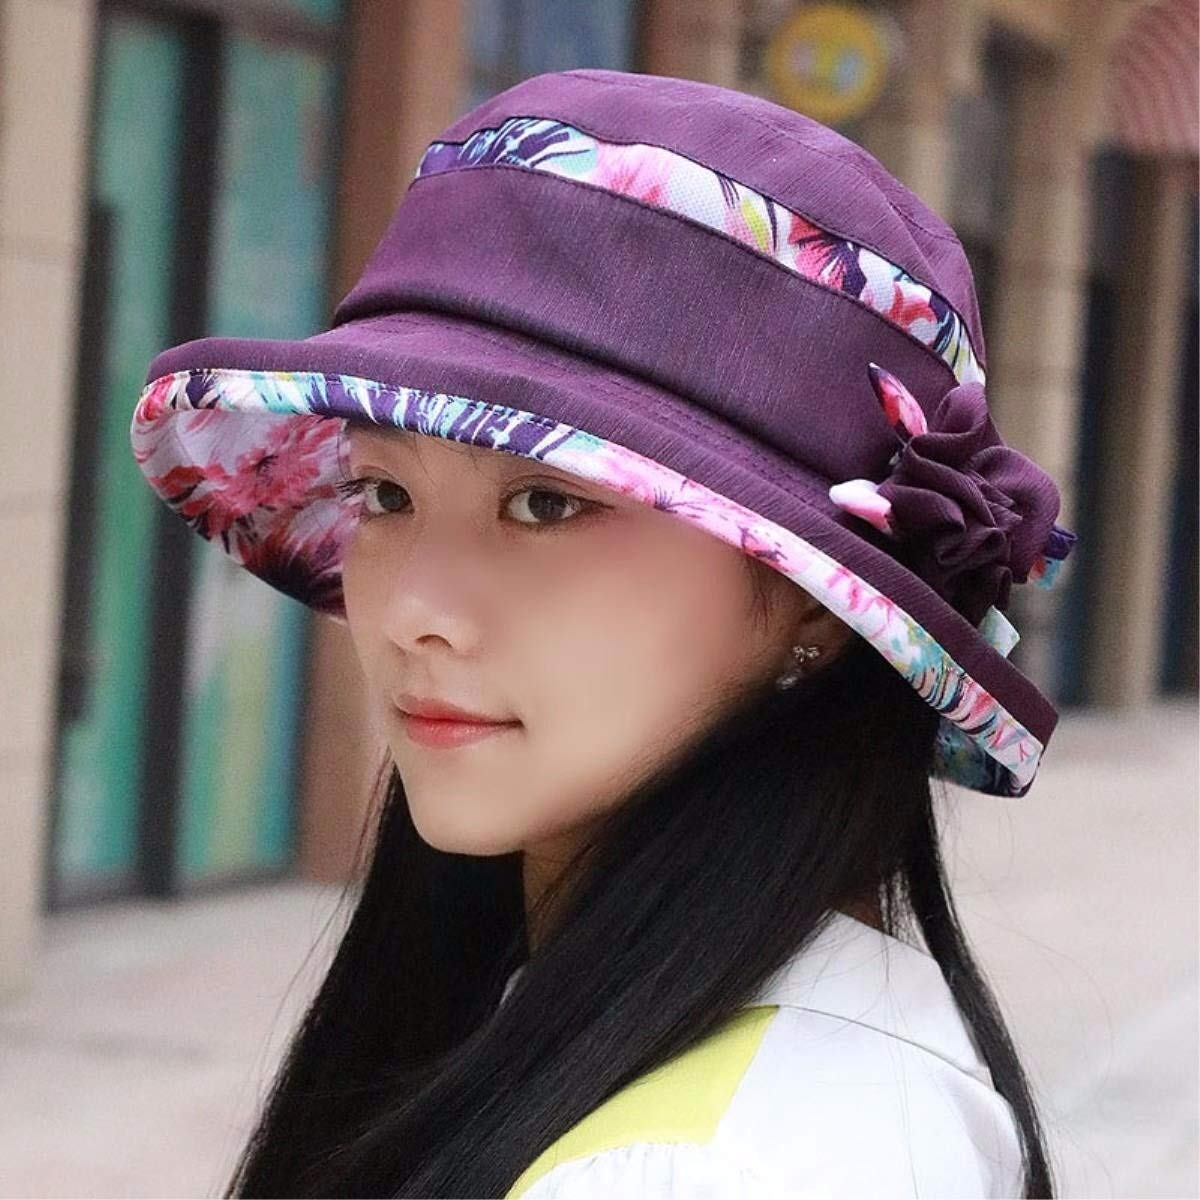 Aoxishiye Cotton Hat, Floral Printed Cap with Brim for Vacation Summer Beach (Color : A, Size : M) by Aoxishiye